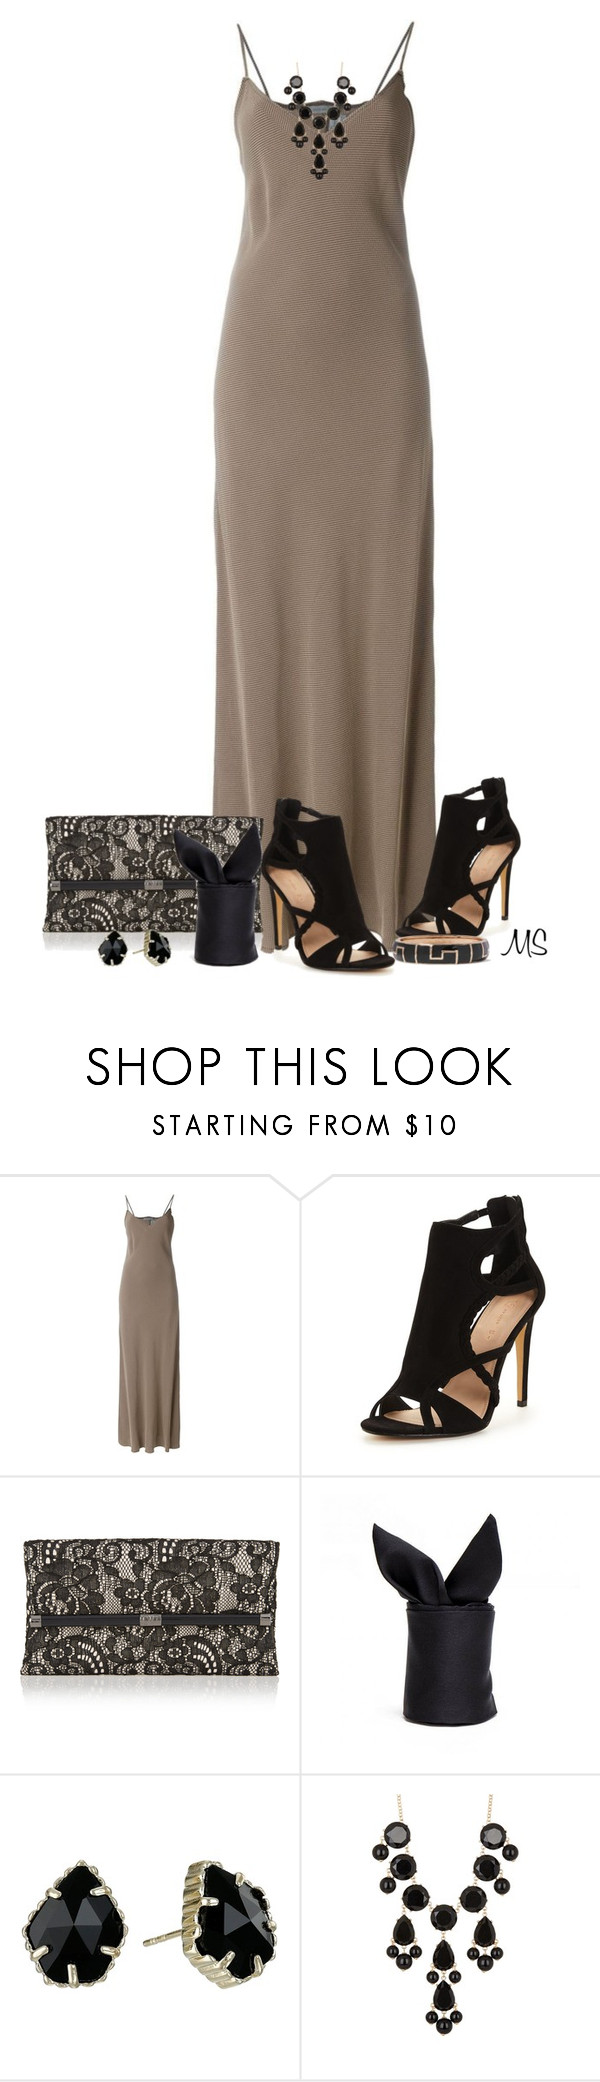 """Maxi"" by michellesherrill ❤ liked on Polyvore featuring DuÅ¡an, Diane Von Furstenberg, Kendra Scott, Natasha Accessories and Kenneth Jay Lane"